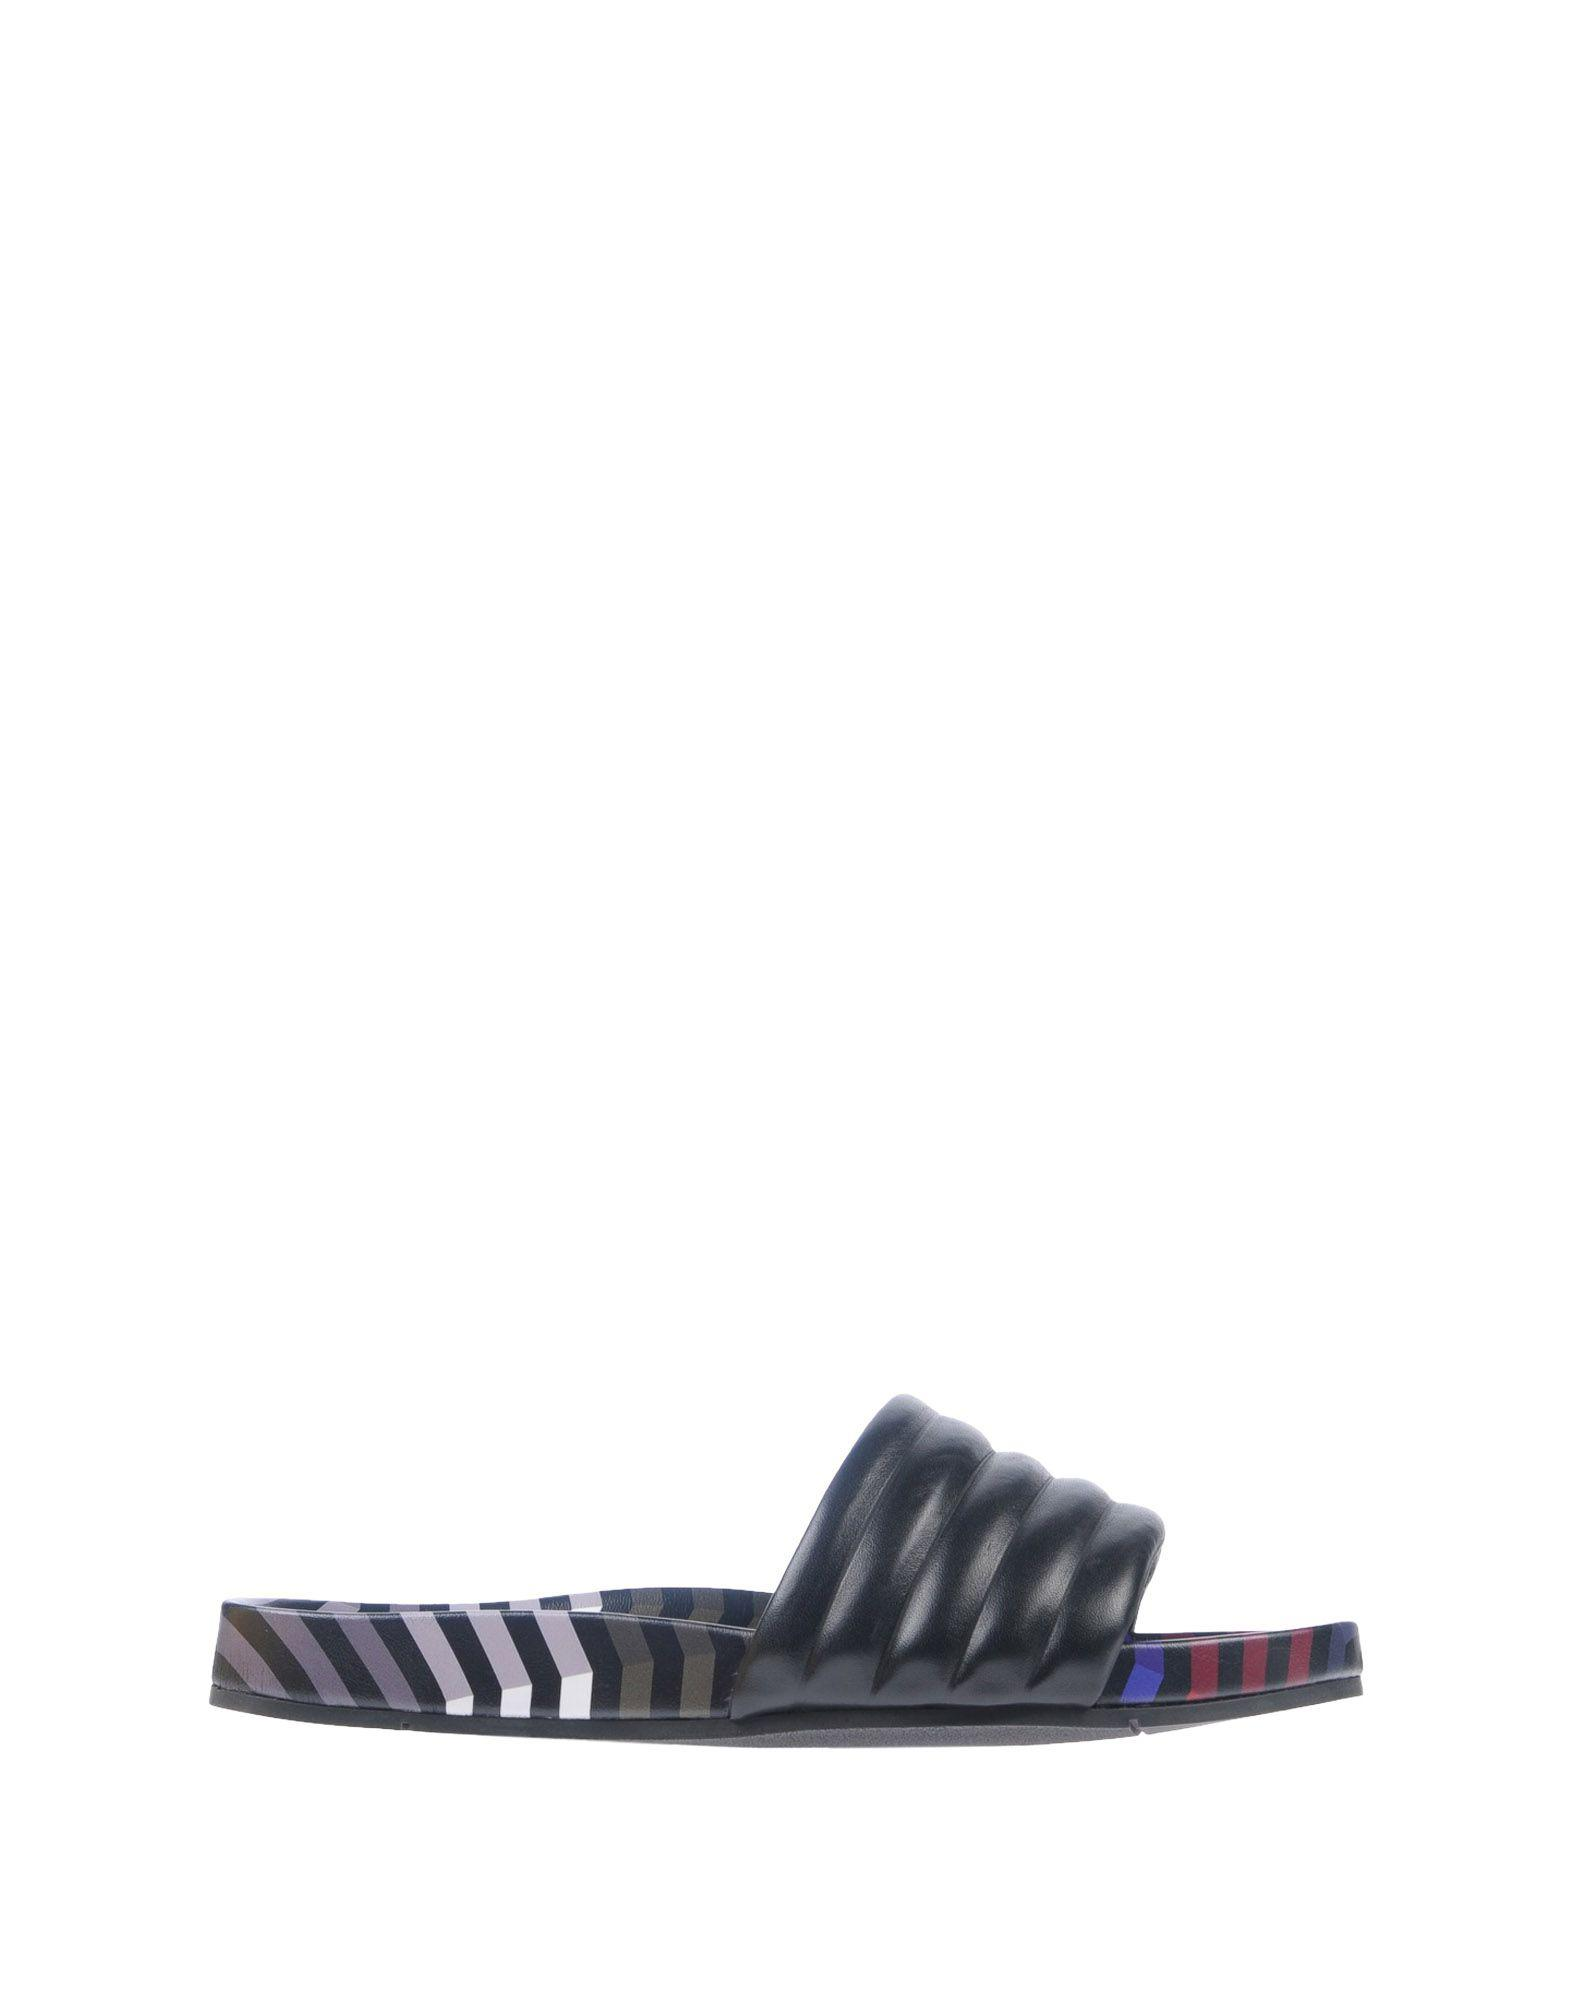 a956ac1a91f8 Lyst - Fendi Sandals in Black for Men